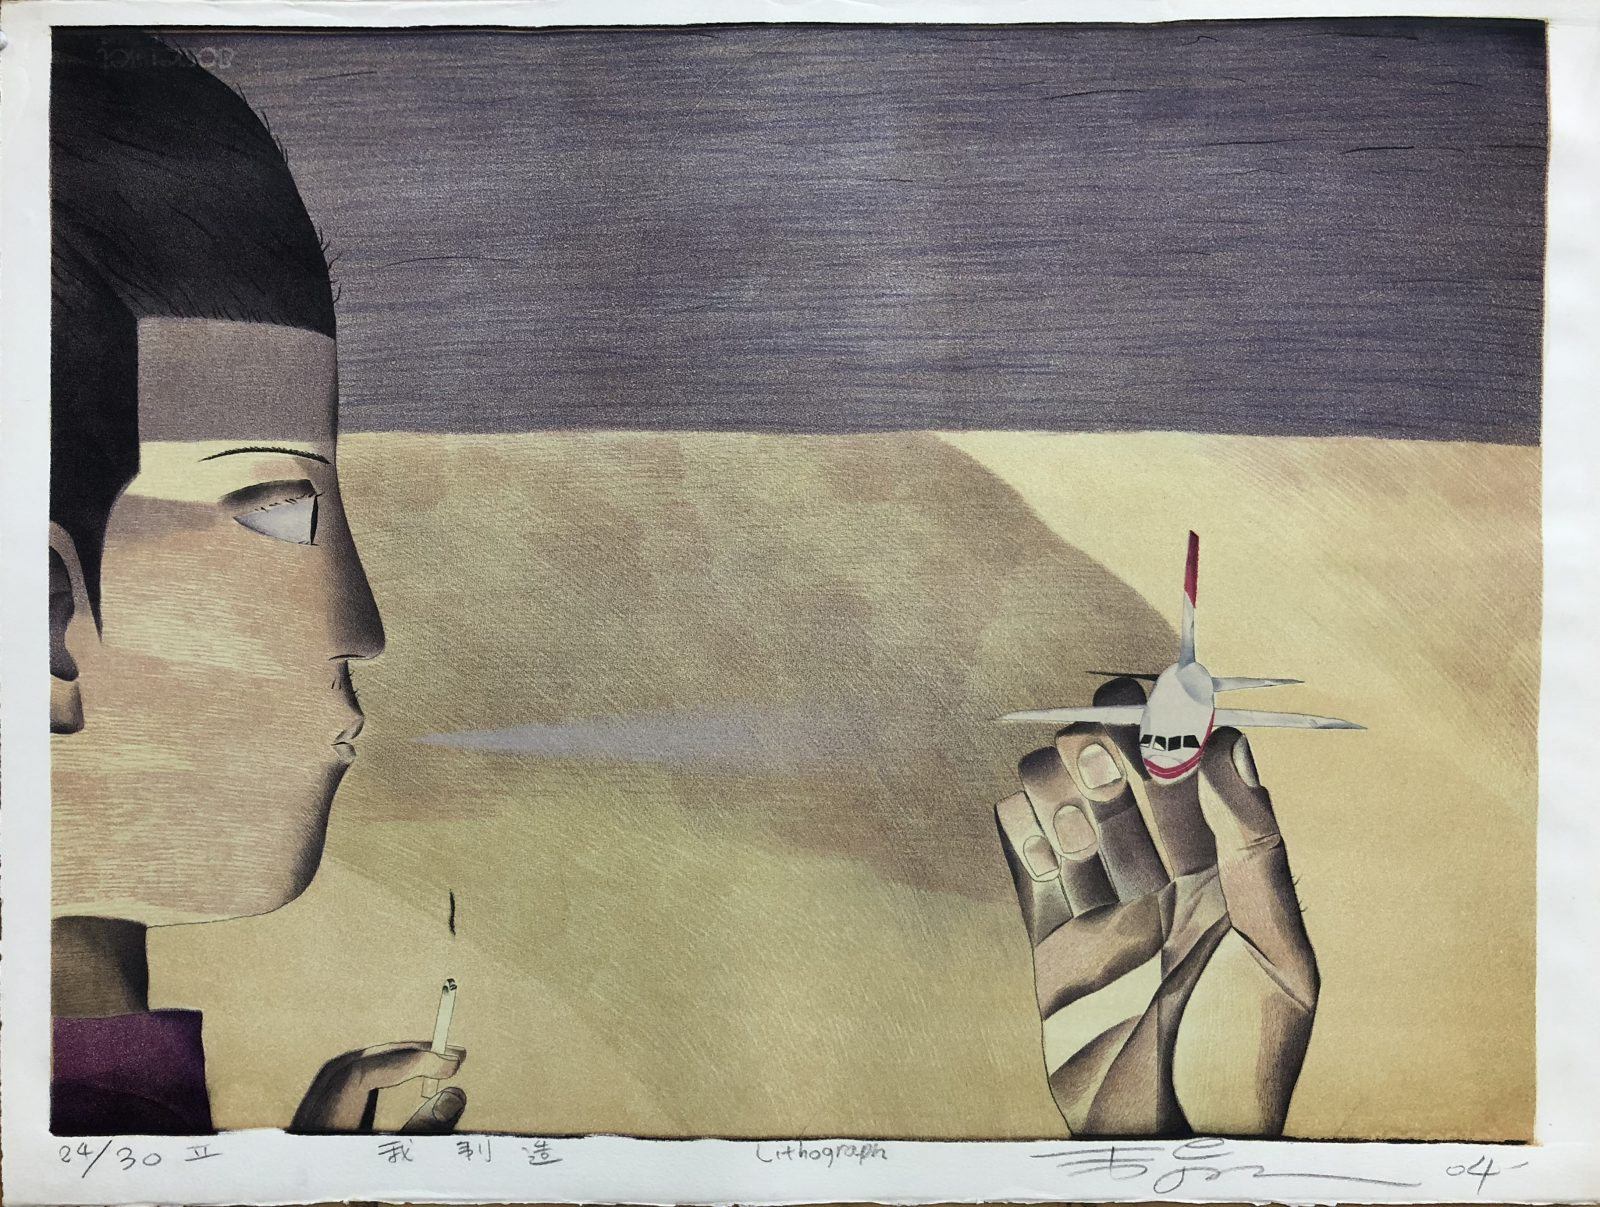 'Made by Me' by Wei Jia, Oil based Ink on Paper, Lithography, 2004, ArtChina